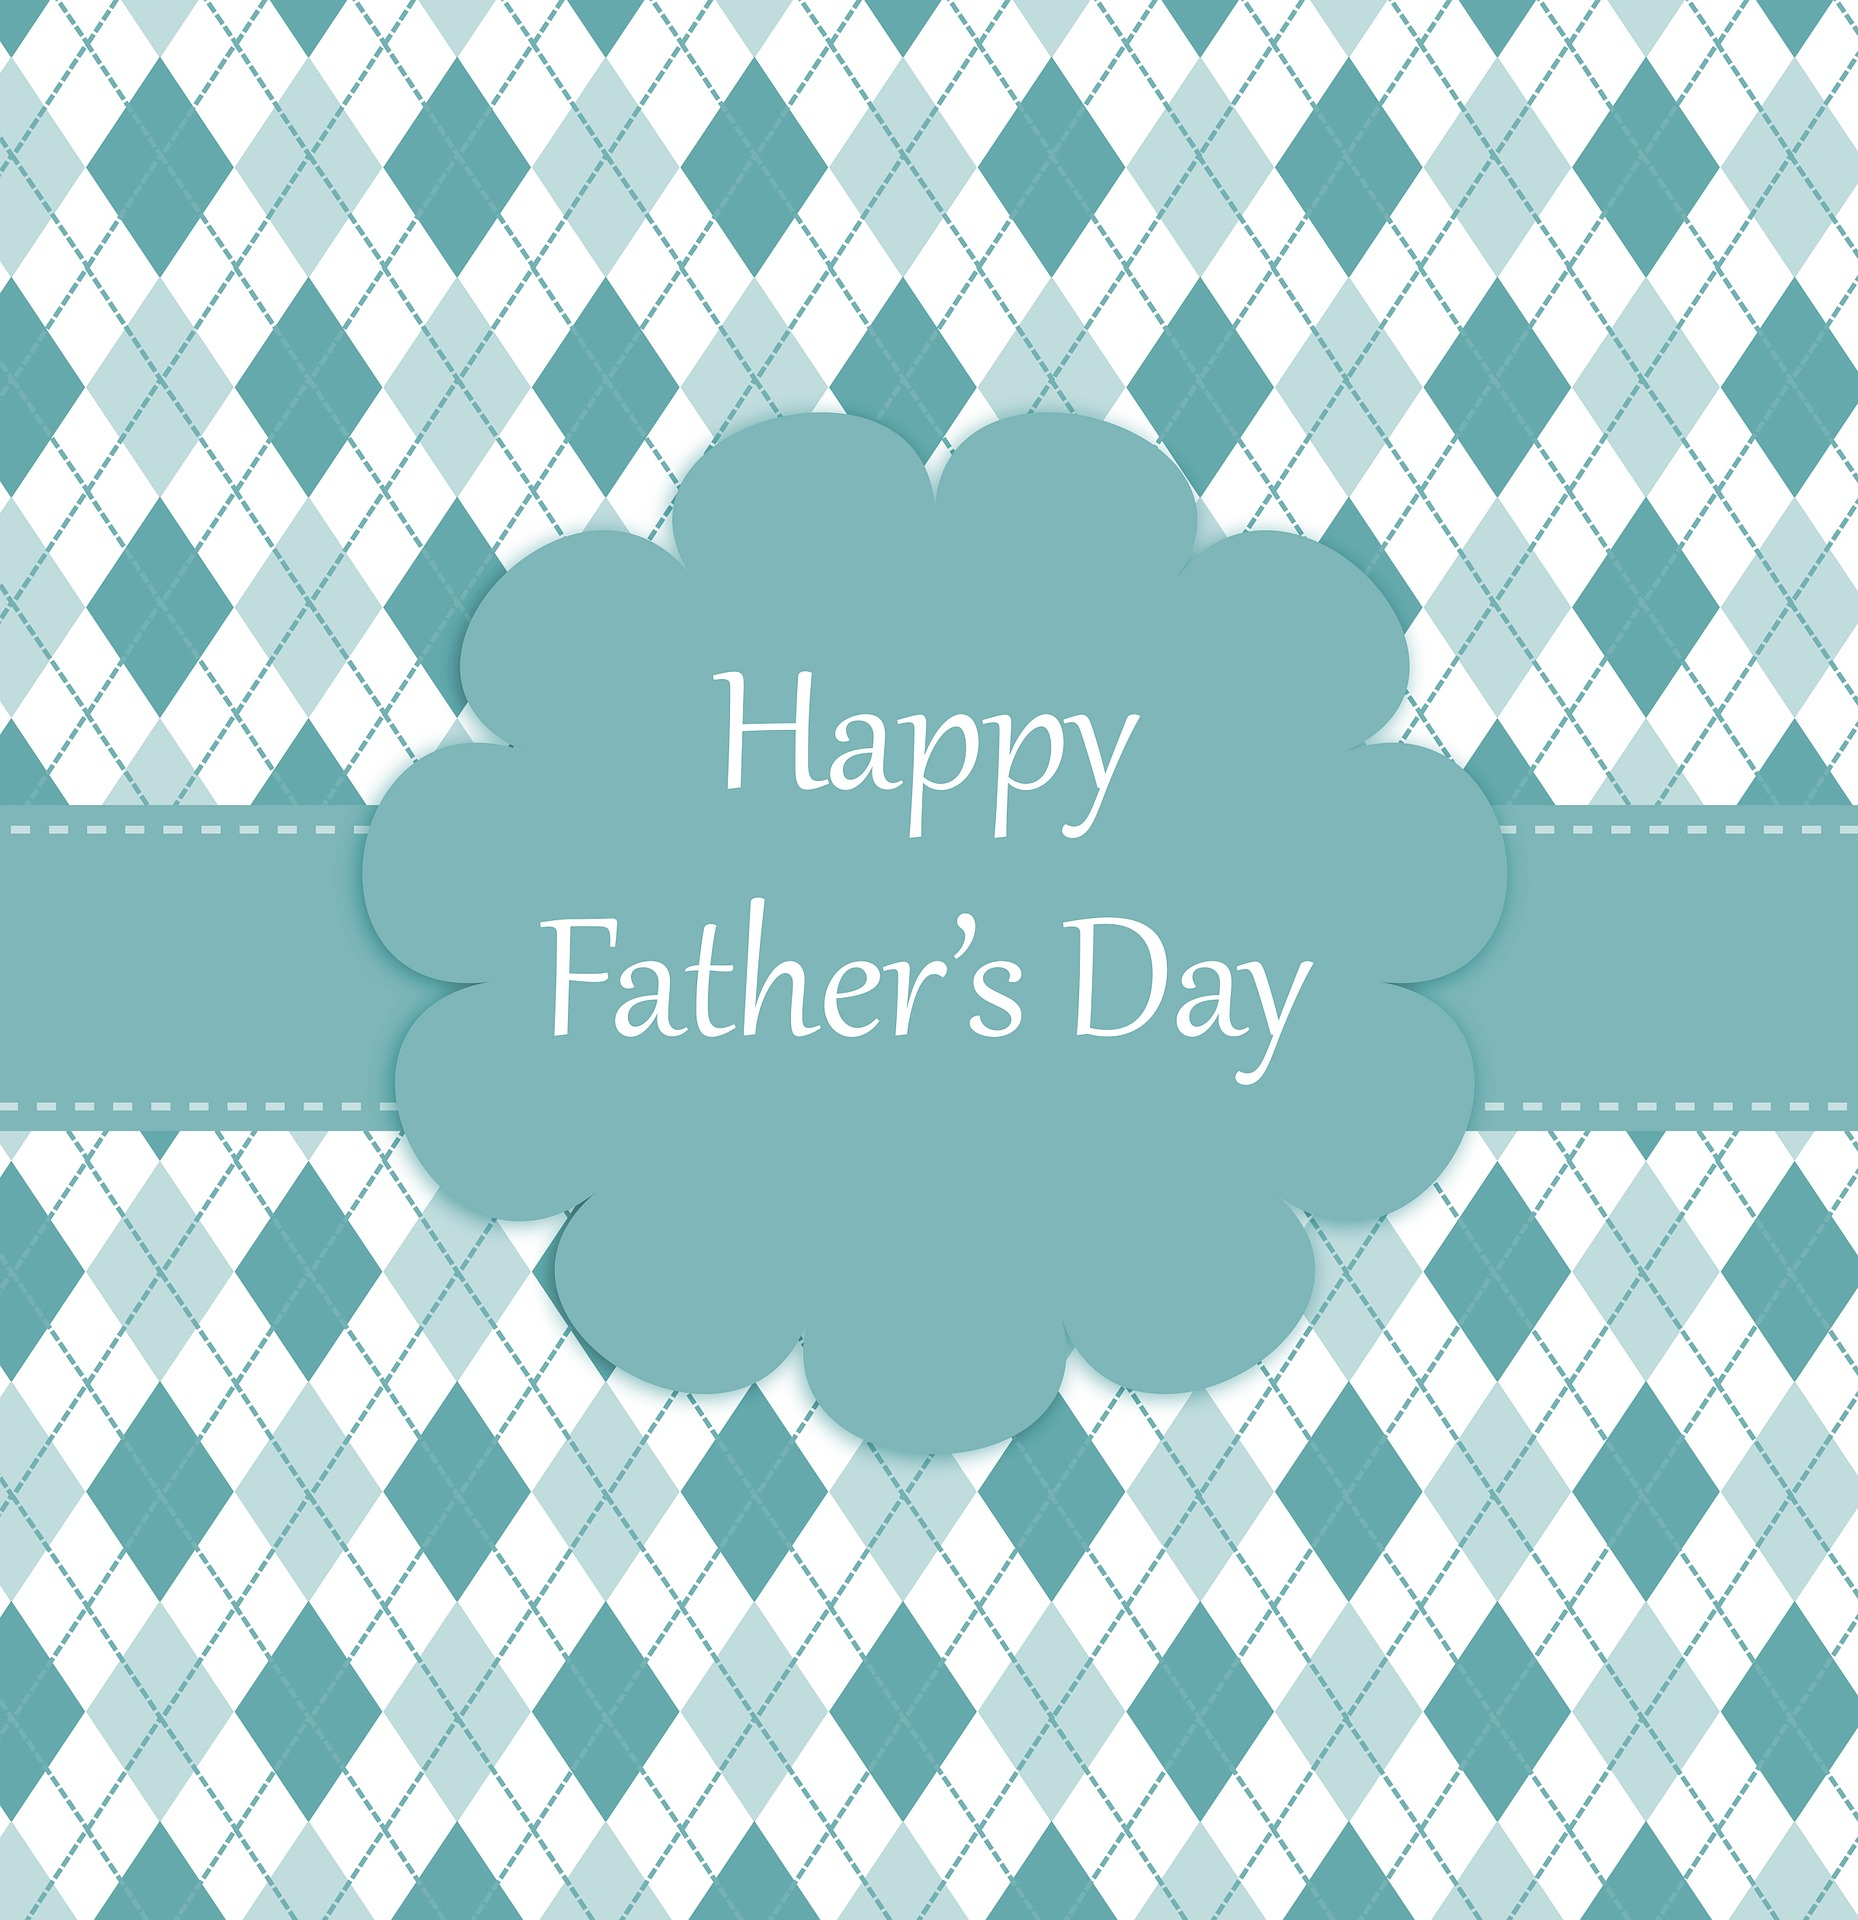 fathers-day-card-875315_1920.jpg